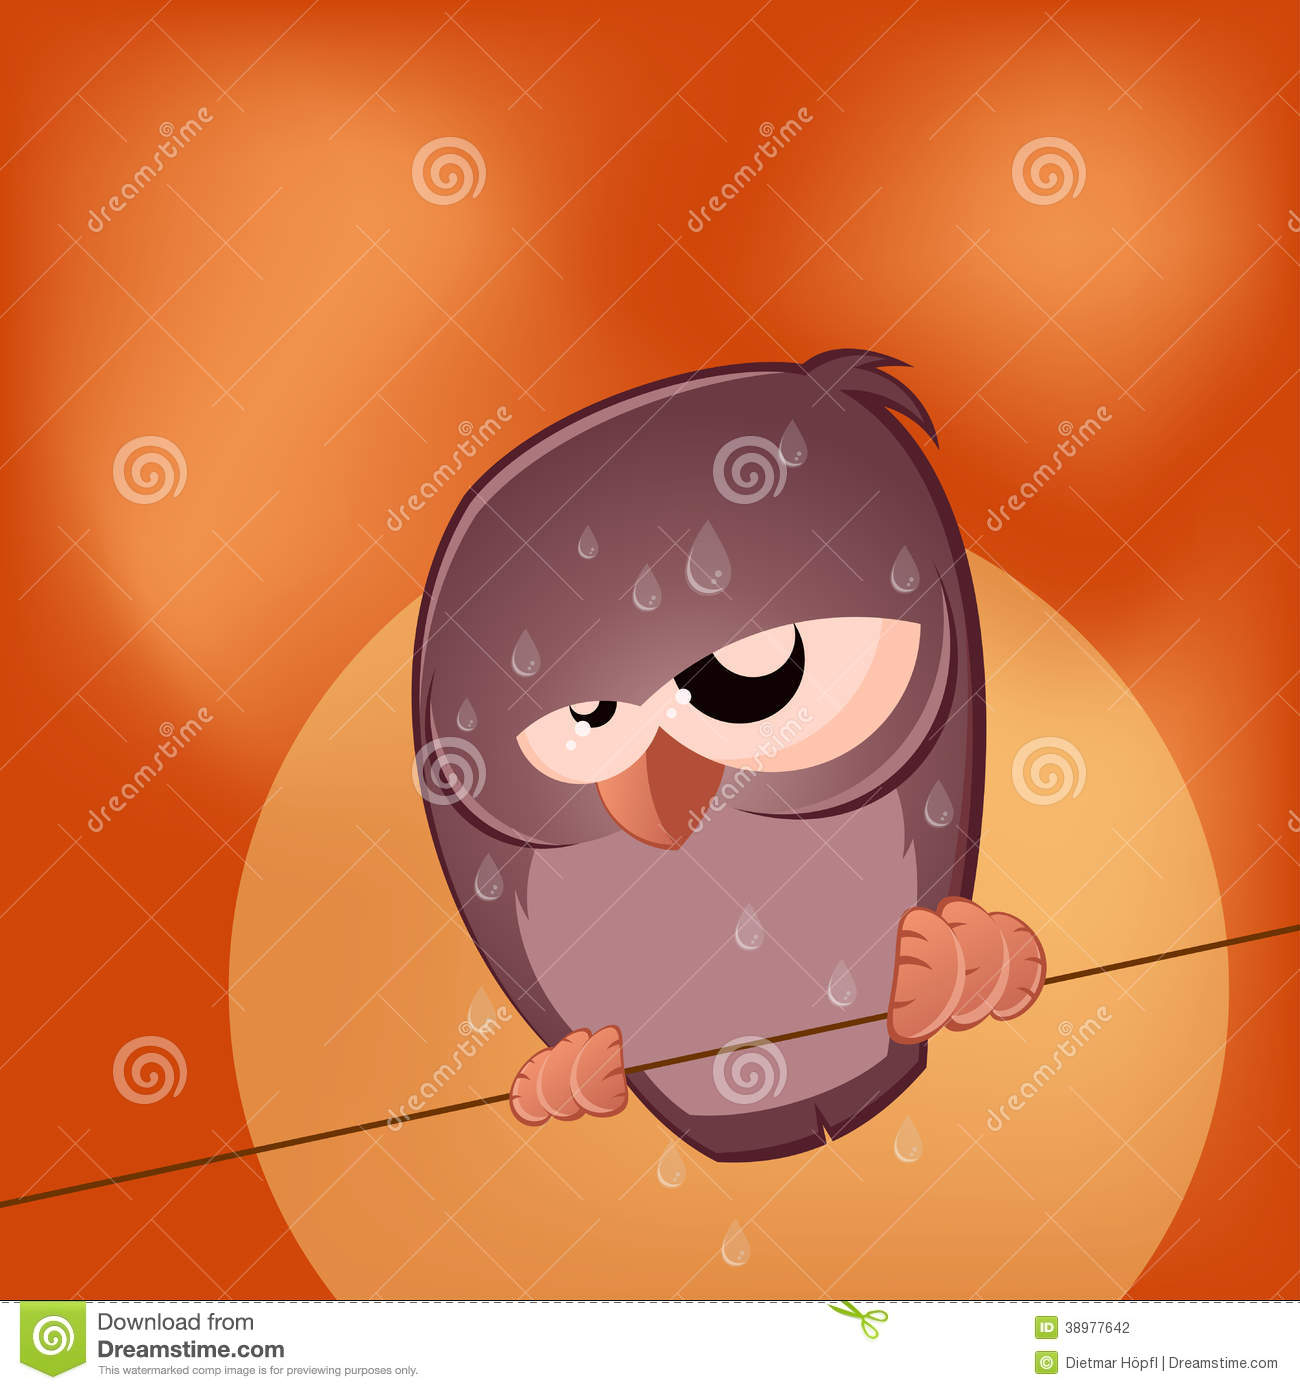 Sullen Cartoon Bird Is Sweating Stock Vector - Image: 38977642